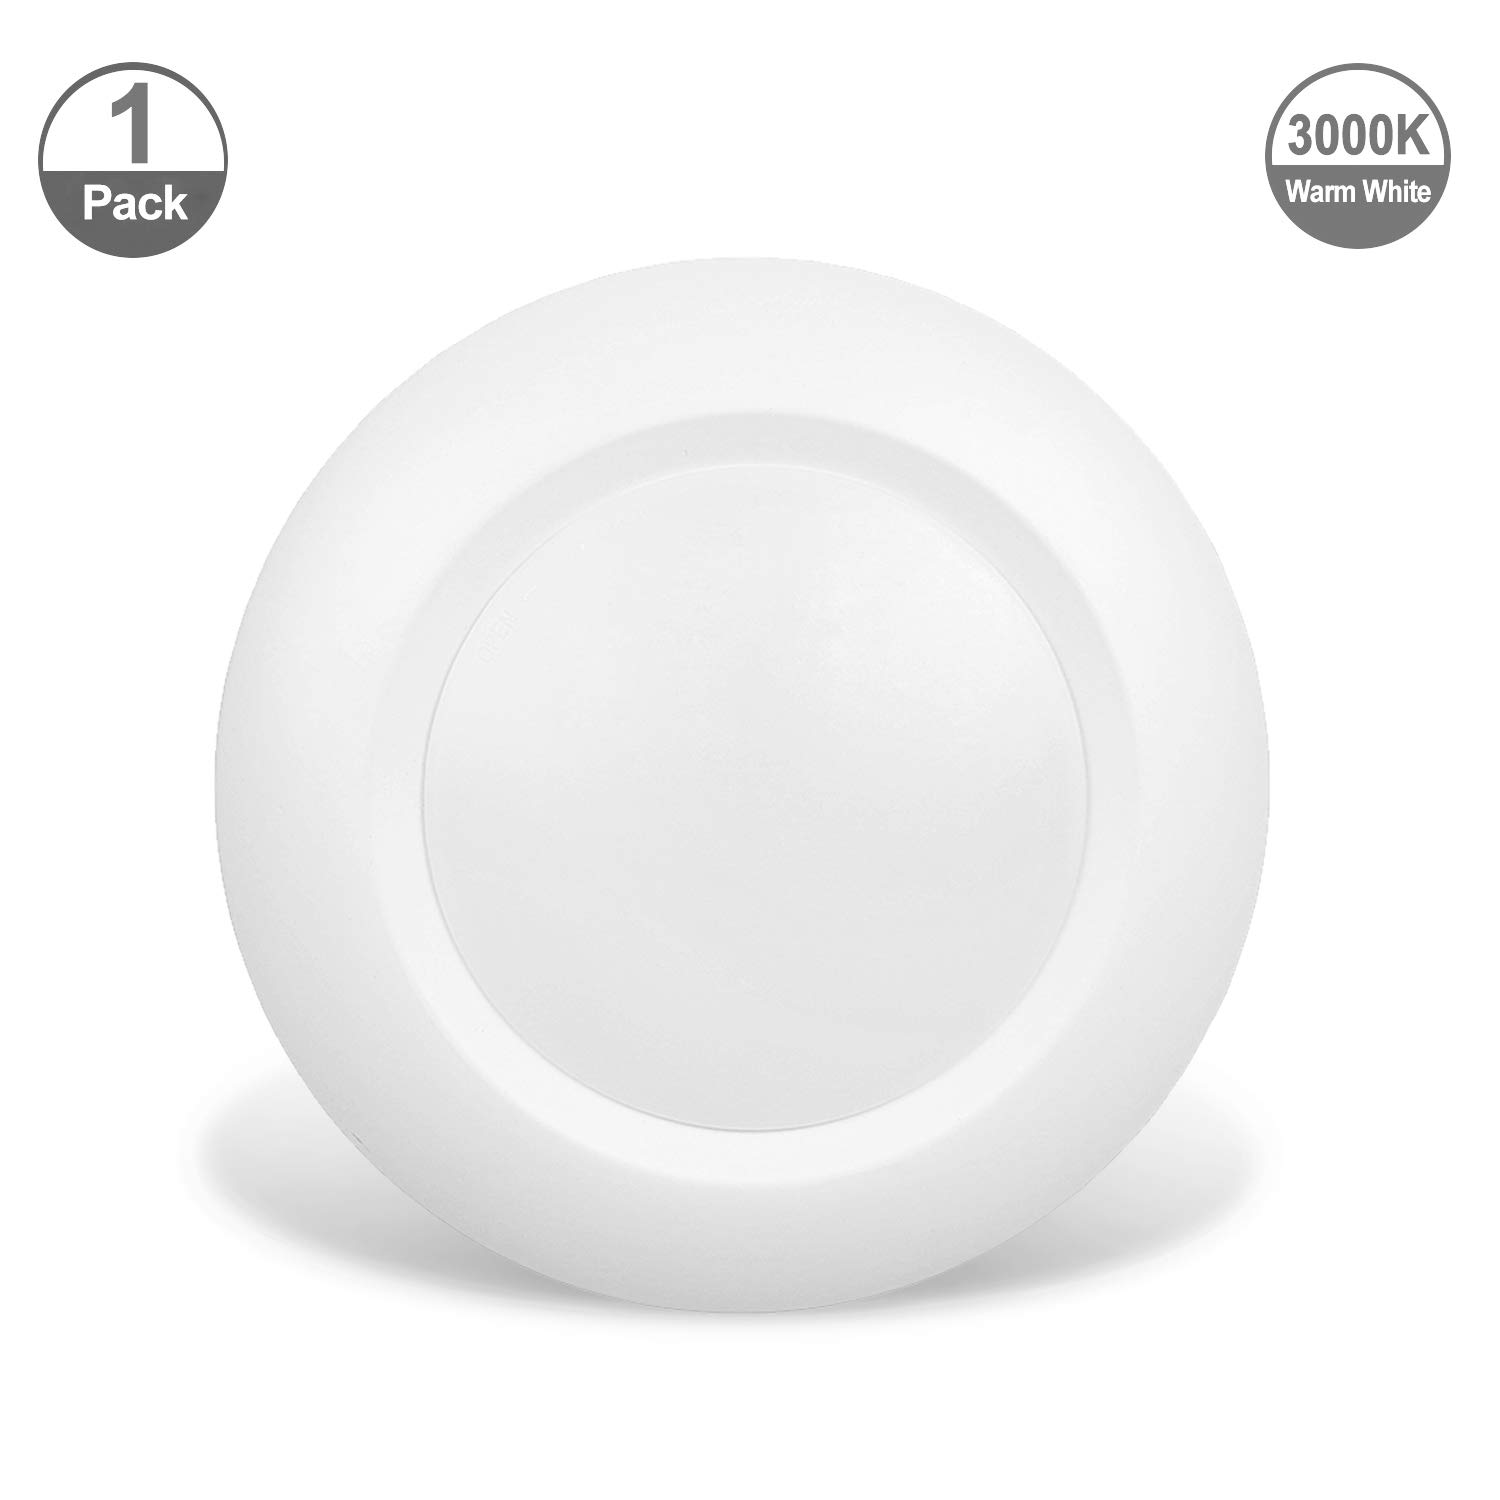 JULLISON 4 Inch LED Low Profile Recessed & Surface Mount Disk Light, Round, 10W, 600 Lumens, 3000K Warm White, CRI80, DOB Design, Dimmable, Energy Star, cETLus Listed, 1 Pack(White) … …